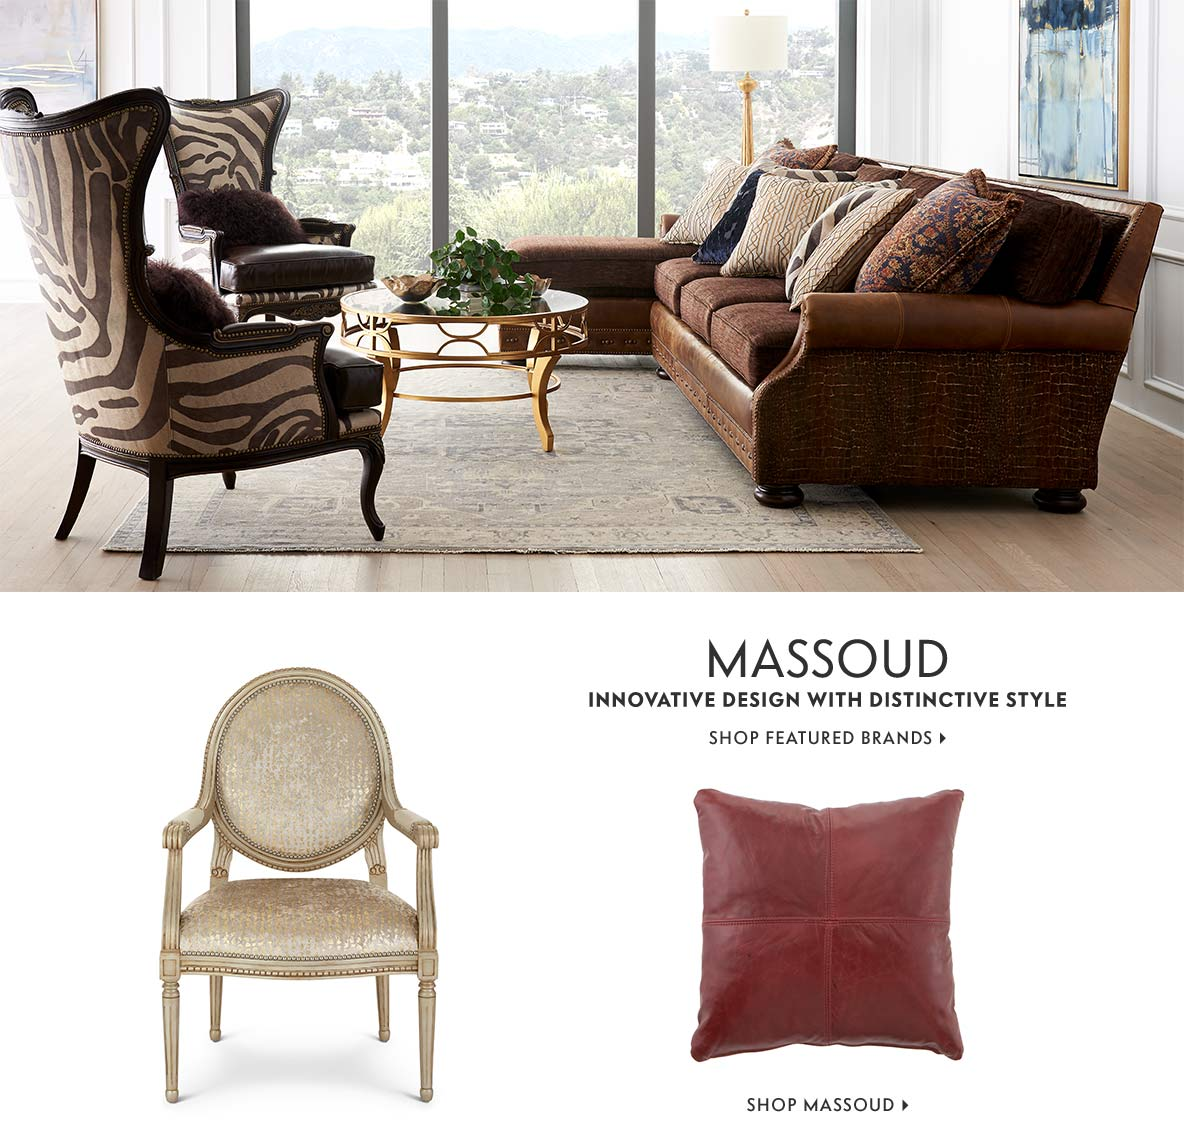 Massoud Innovative design with distinctive style